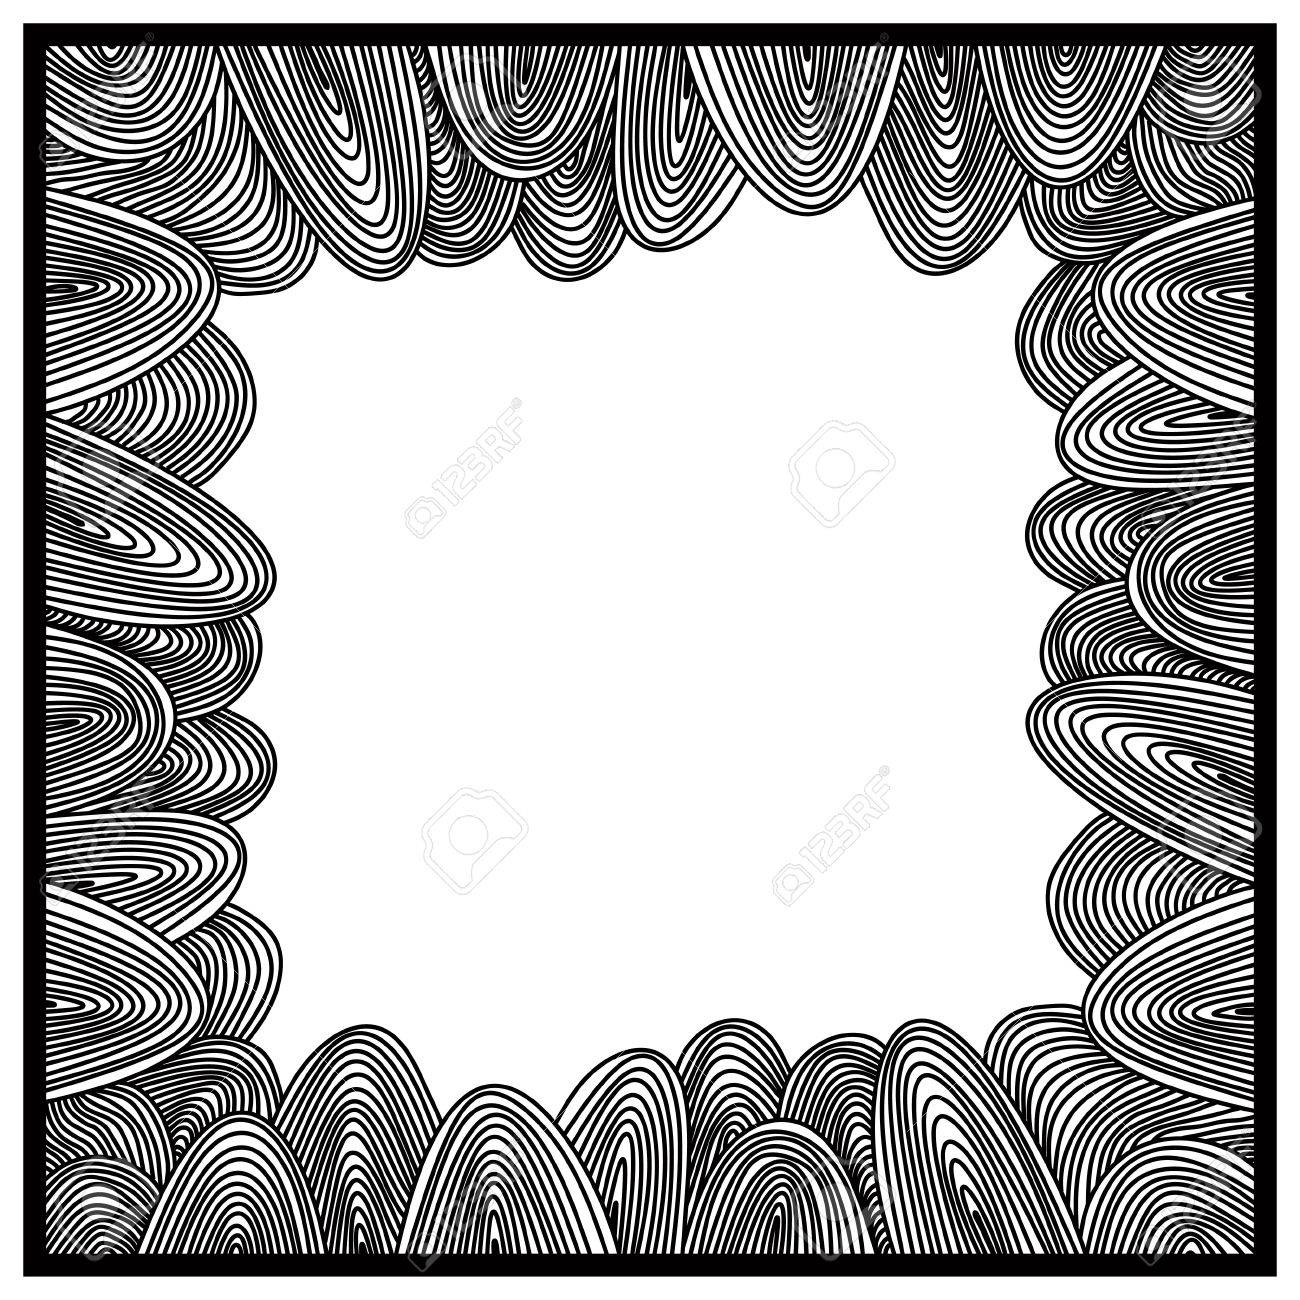 Frame vector drawing. Stock Vector - 13790617